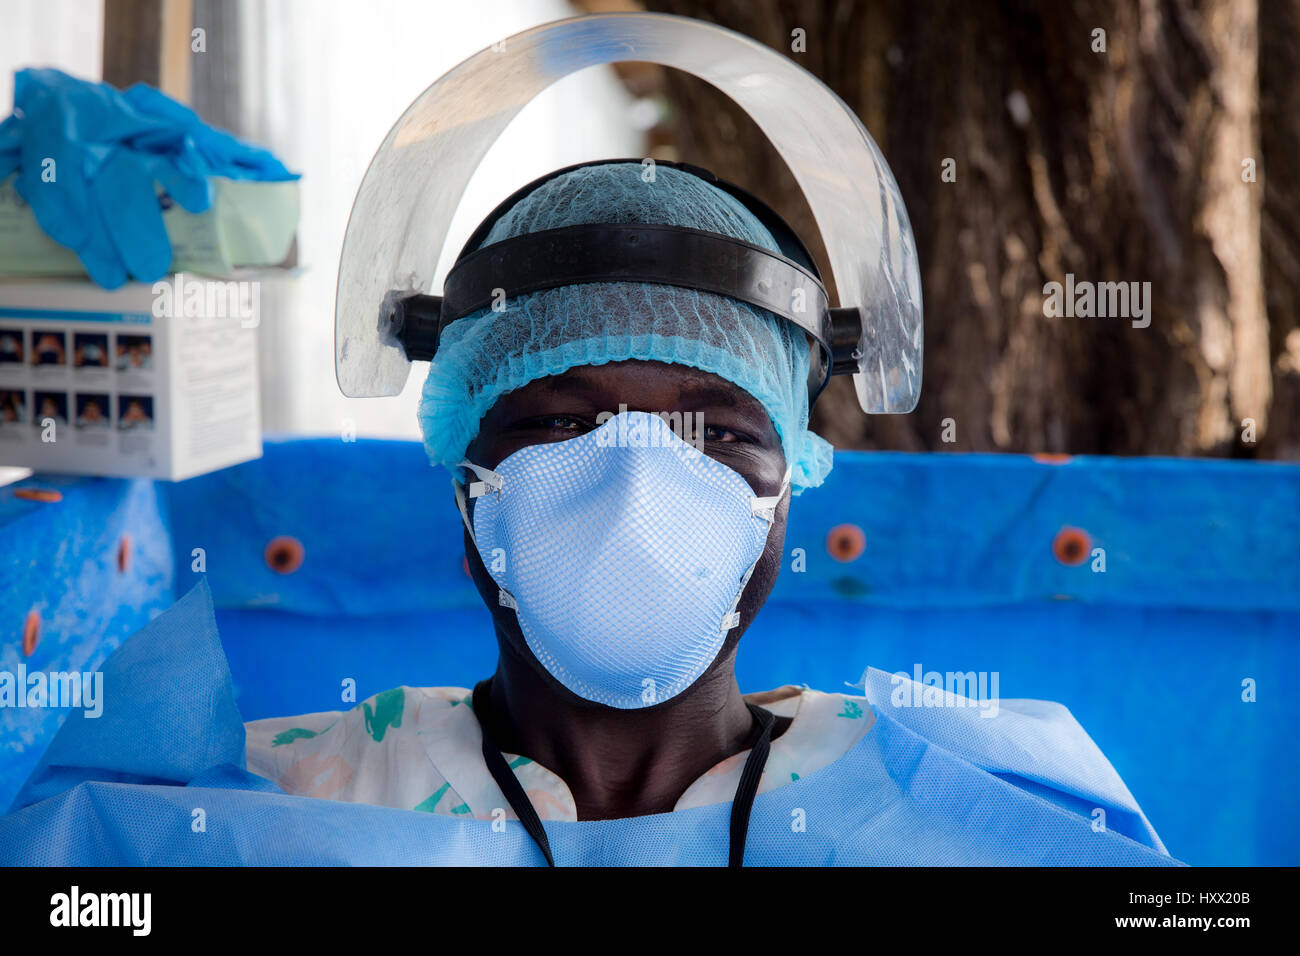 At the entrance of the ETU's everyone is prepared to encounter the sick. This man wears protective clothing just - Stock Image